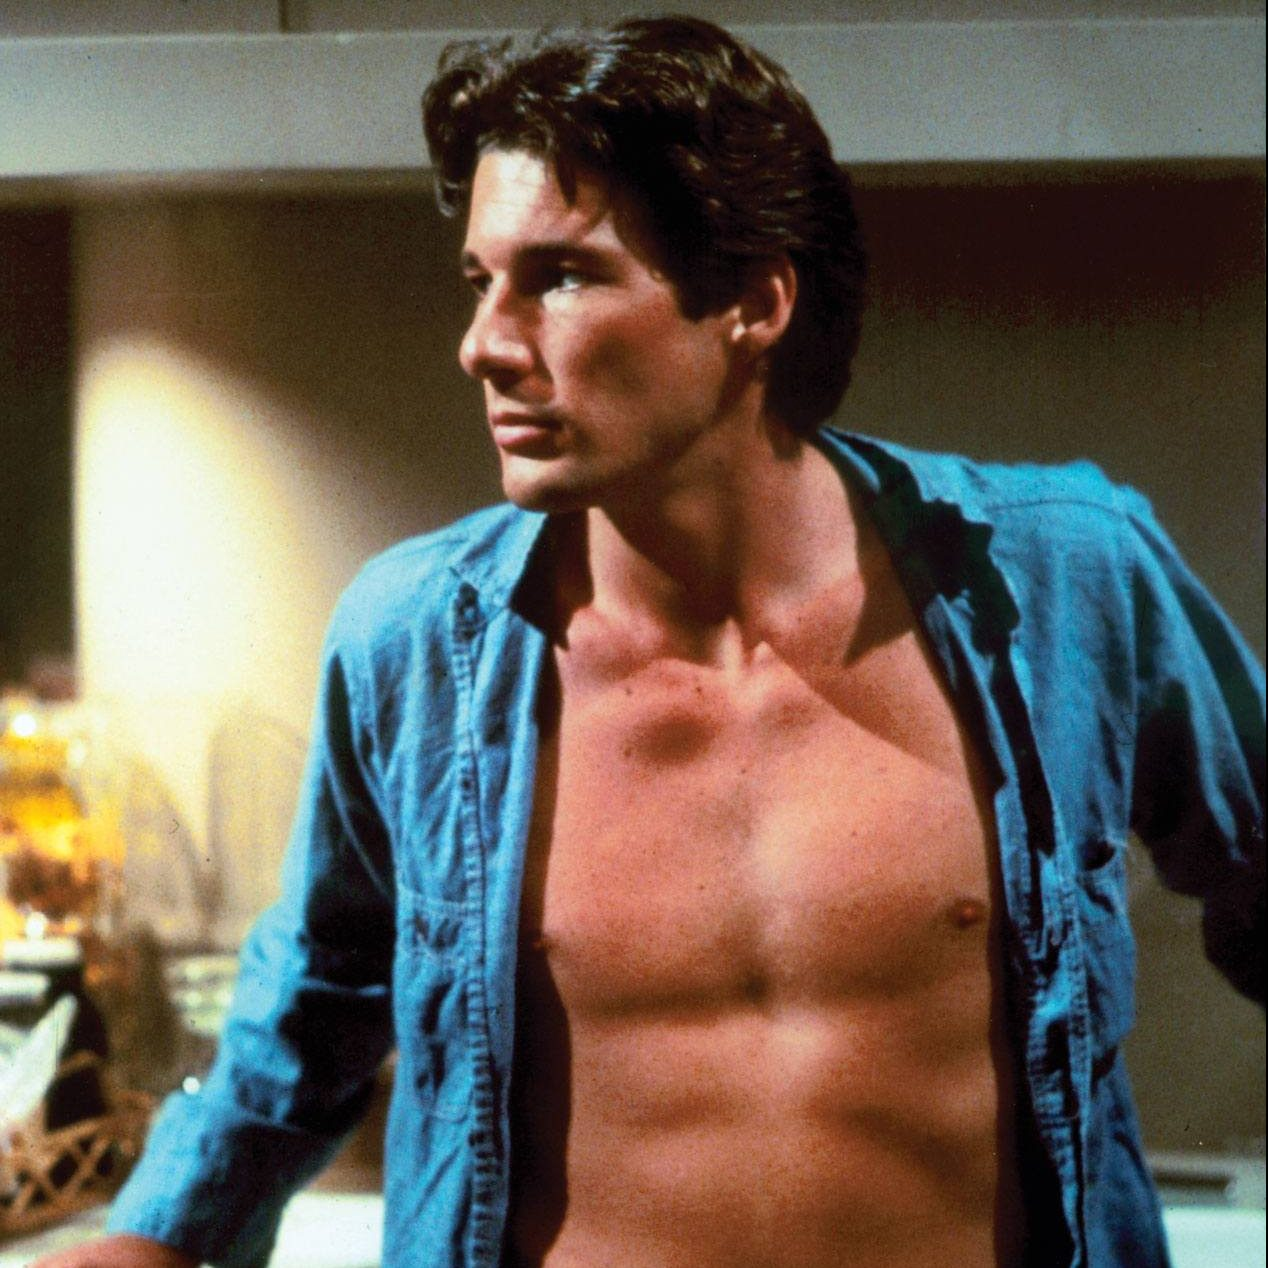 Richard Gere American Gigolo e1601894381288 20 Things You Didn't Know About Richard Gere